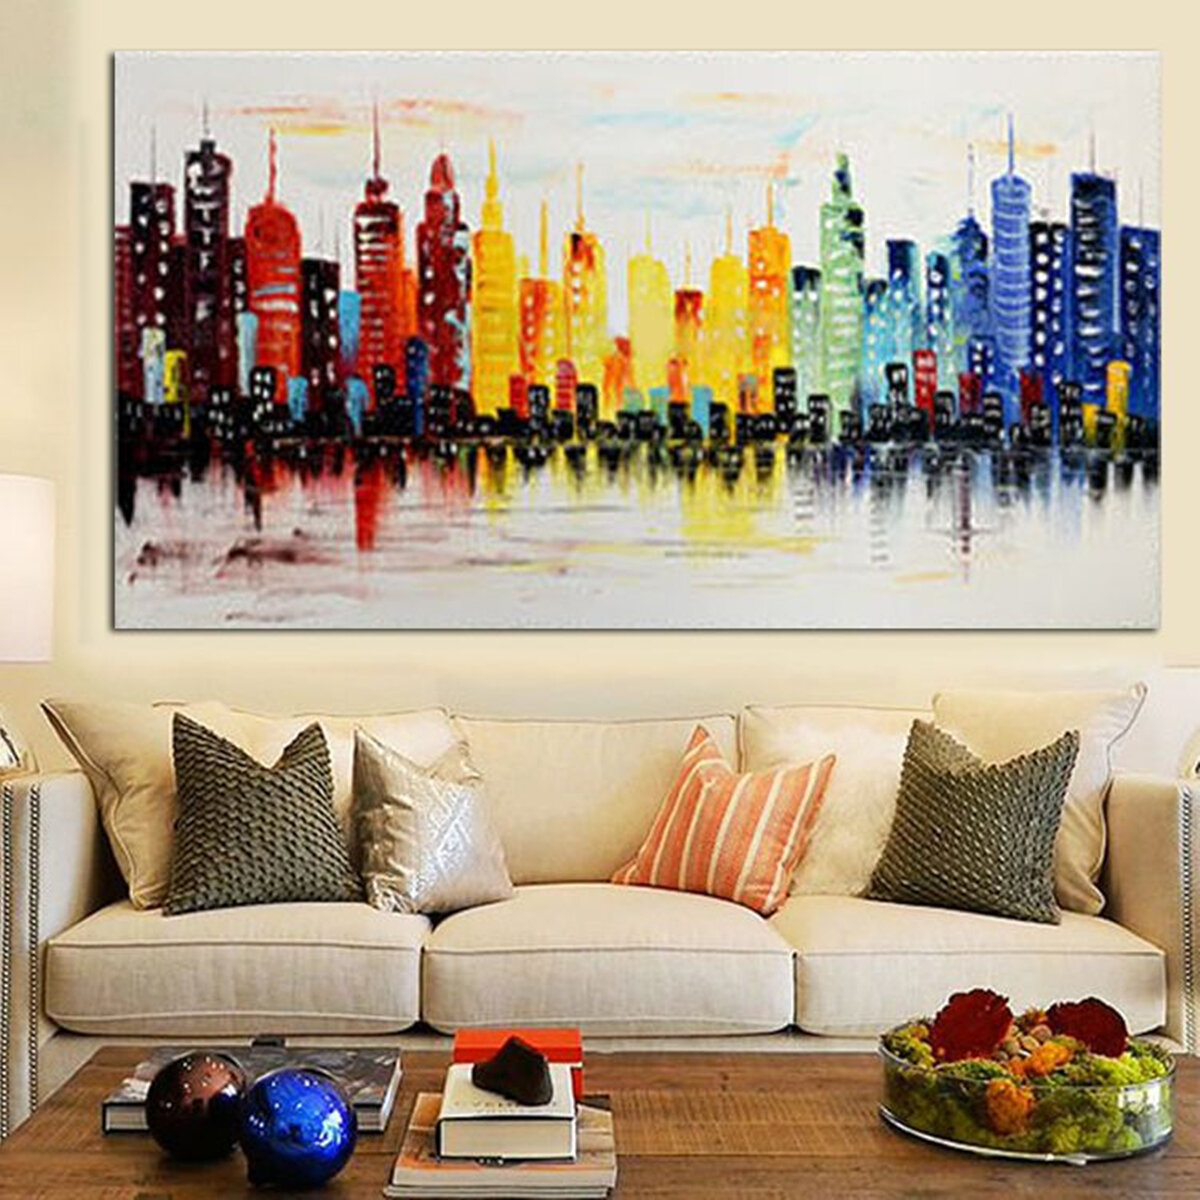 ffe9952960cf 120X60CM Modern City Canvas Abstract Painting Print Living Room Art Wall  Decor No Frame Paper Art COD